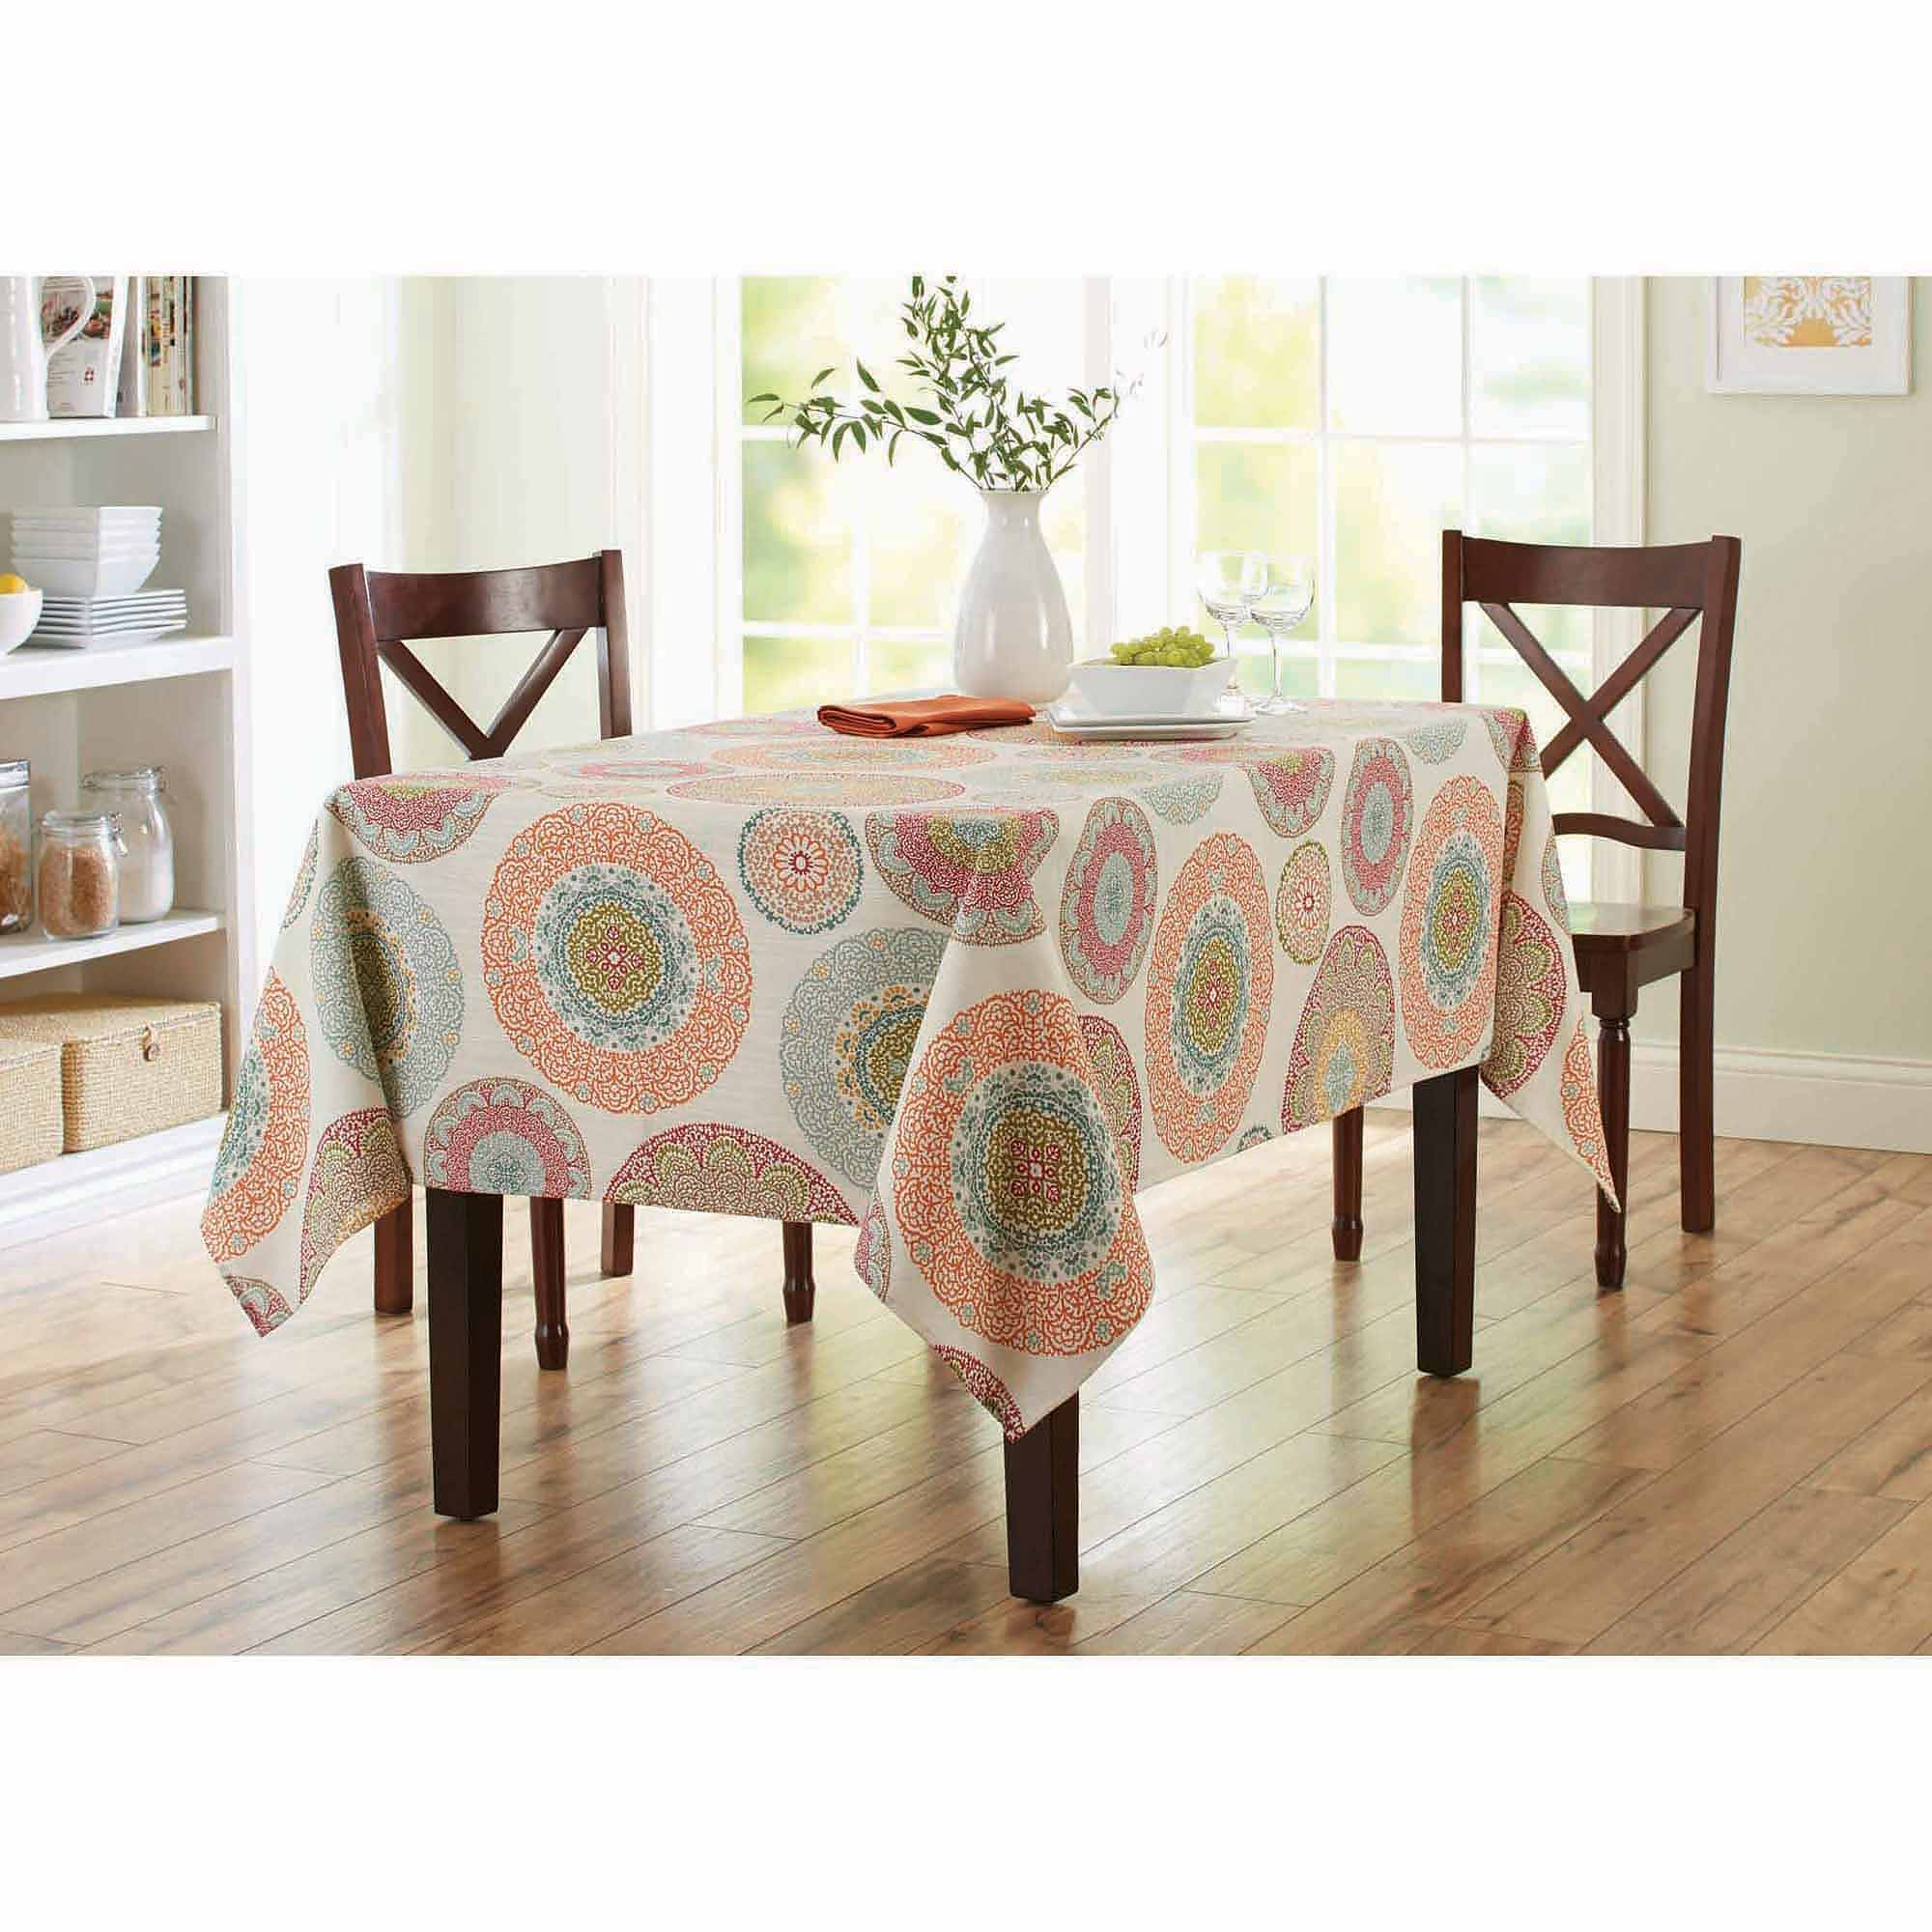 Better Homes and Gardens Lace Medallion Tablecloth